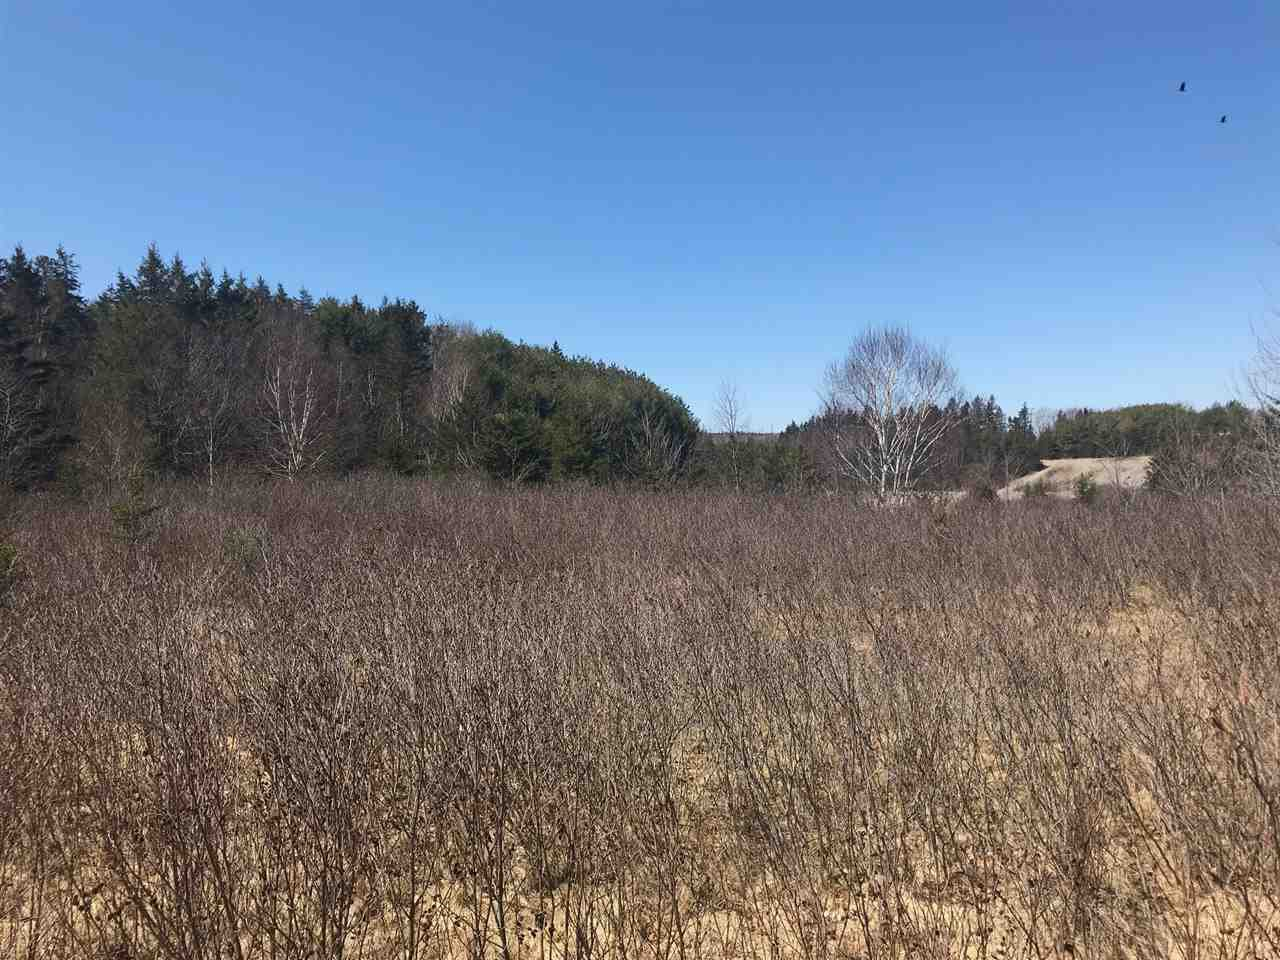 Main Photo: 11574 Highway 7 in Lake Charlotte: 35-Halifax County East Vacant Land for sale (Halifax-Dartmouth)  : MLS®# 201927372